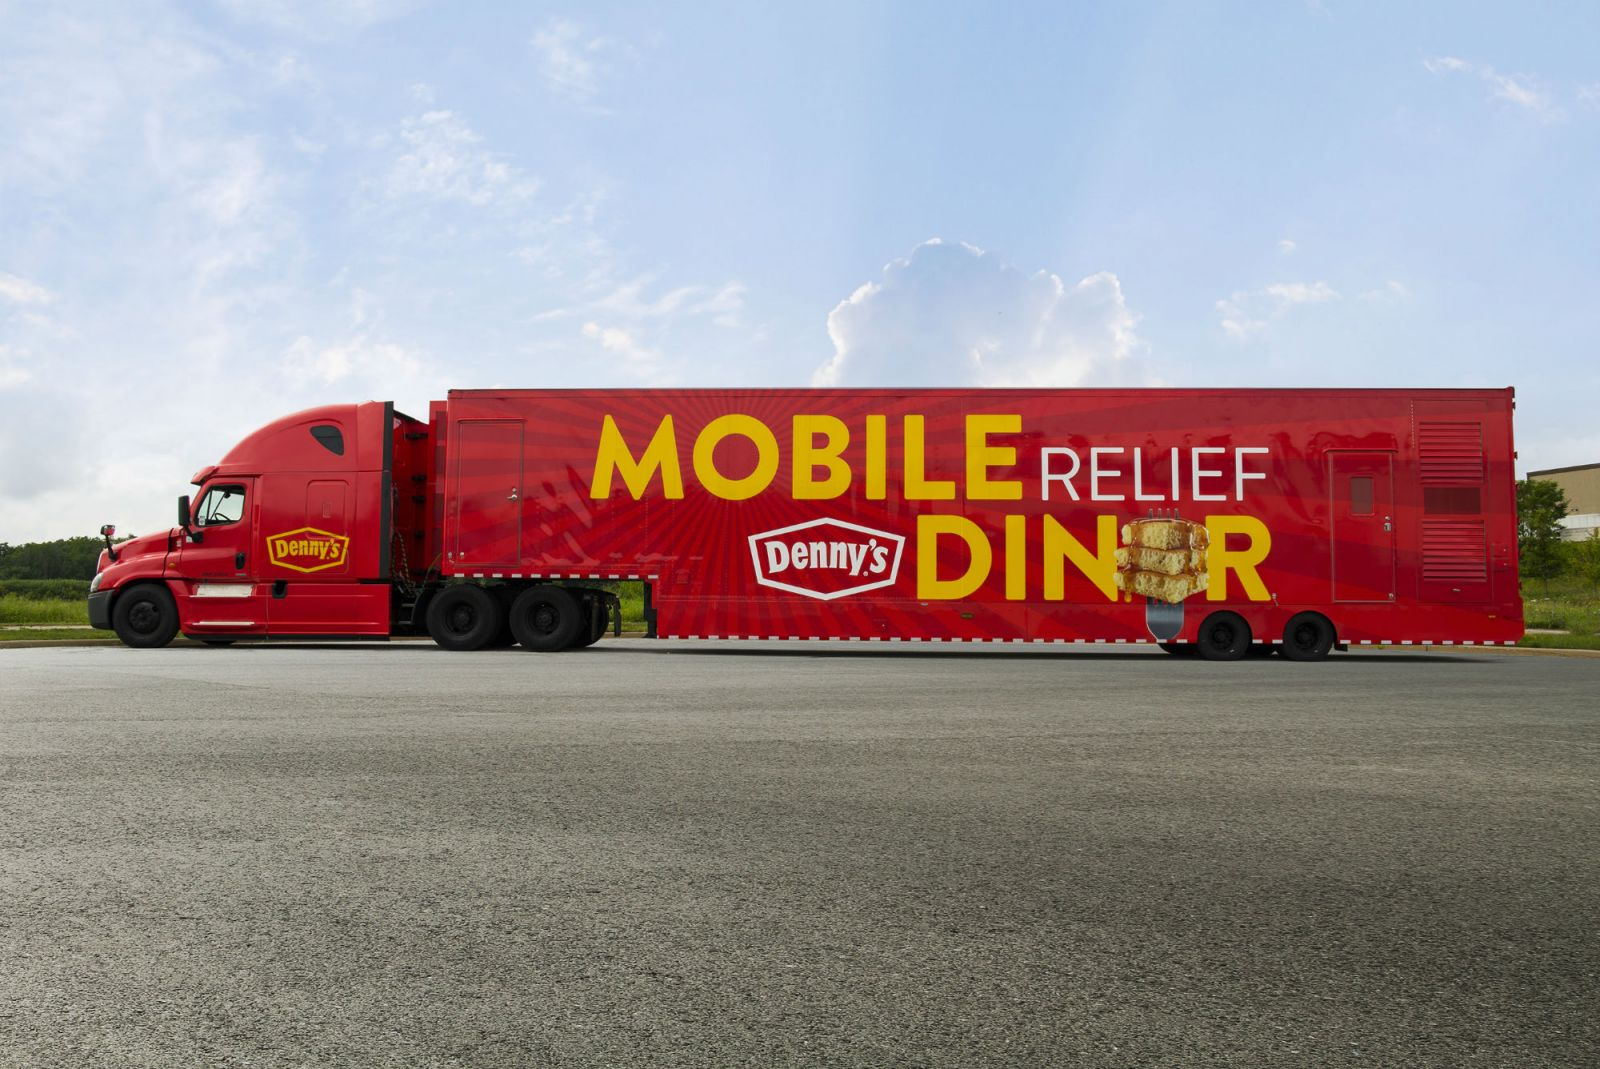 Denny's Mobile Relief Diner is responding to Hurricane Florence. (Photo/Provided)